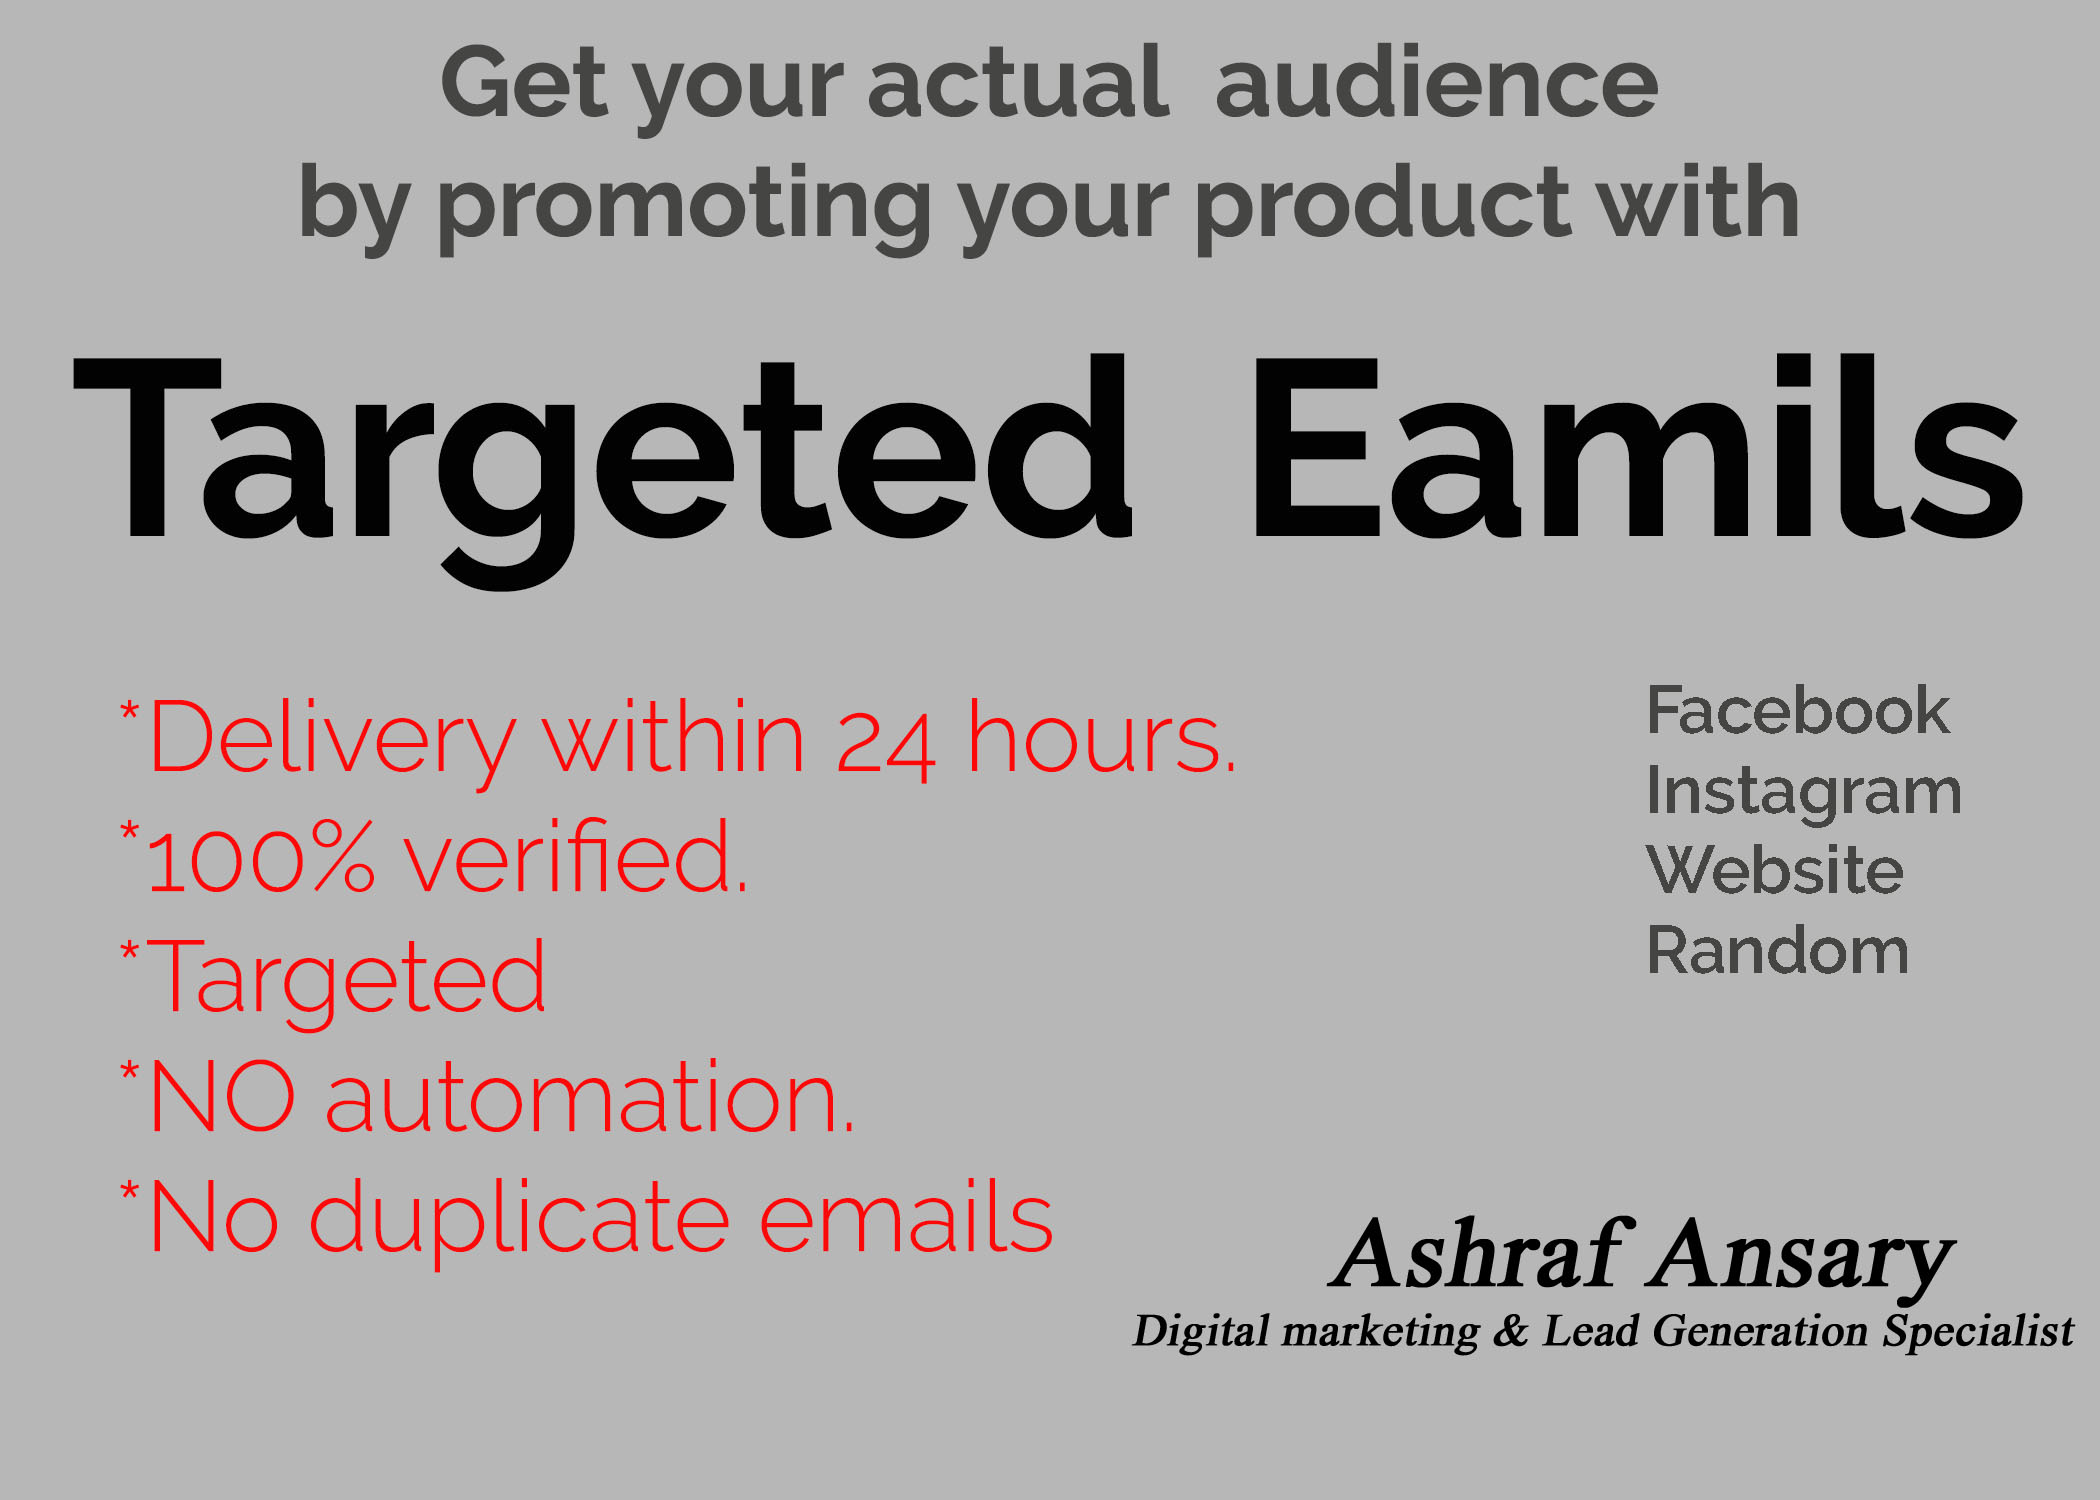 Get 1,00,000 targeted email leads